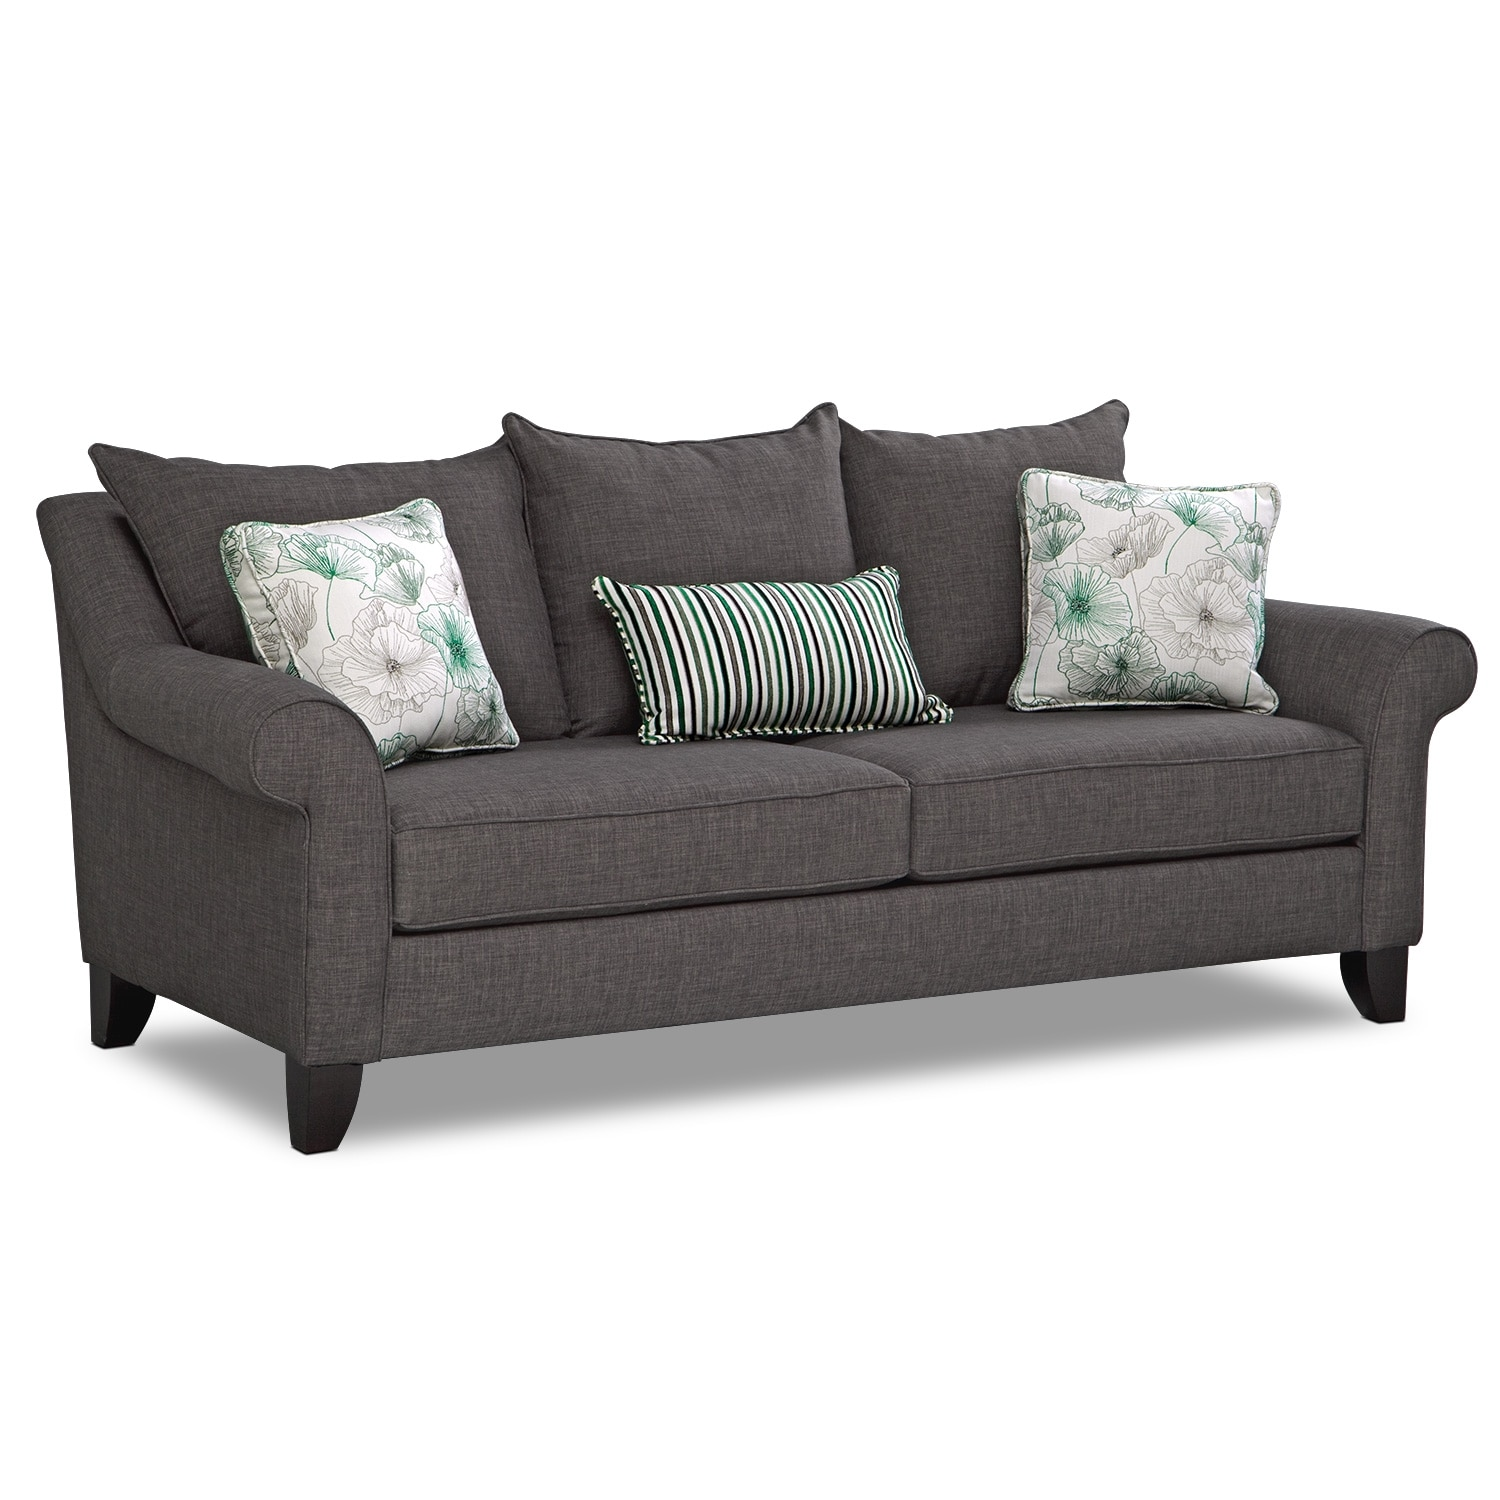 Living Room Furniture - Jasmine Queen Memory Foam Sleeper Sofa